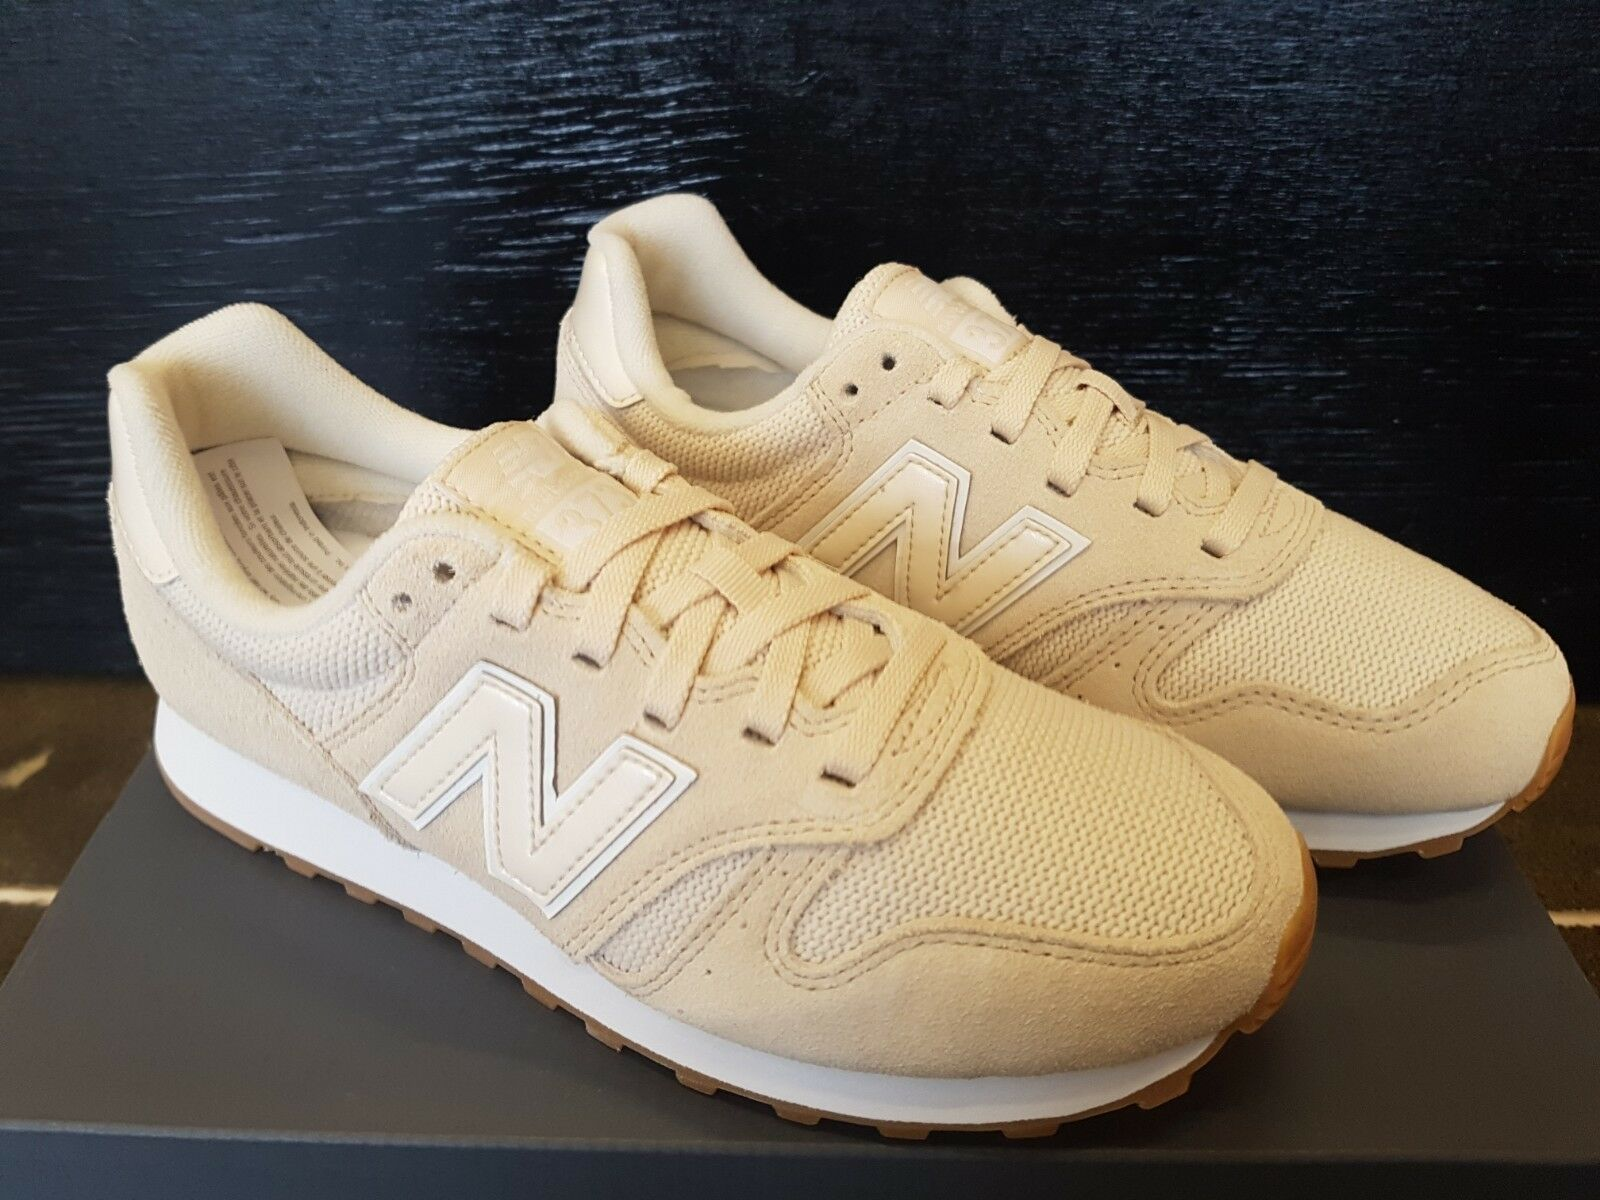 NEW IN THE BOX NEW BALANCE WL373WCG CREAM LIFESTYLE SHOES FOR WOMEN